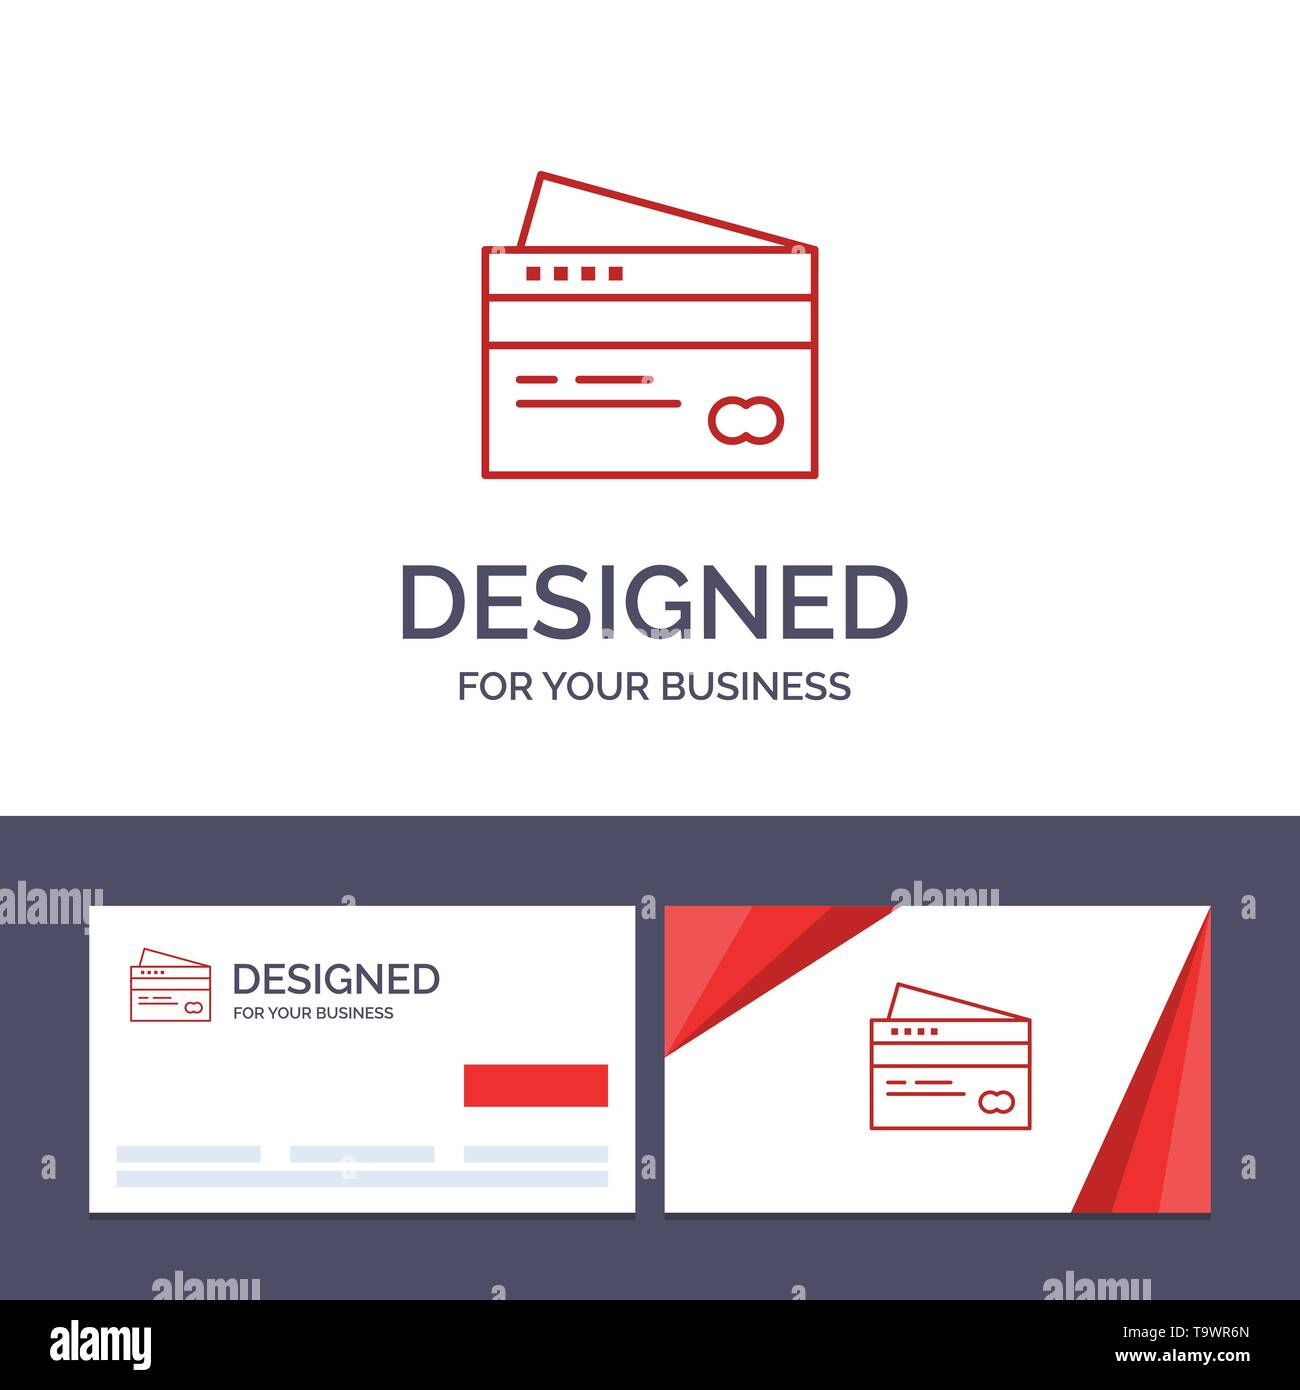 Creative Business Card and Logo template Credit card, Banking, Card, Cards, Credit, Finance, Money, Shopping Vector Illustration - Stock Image